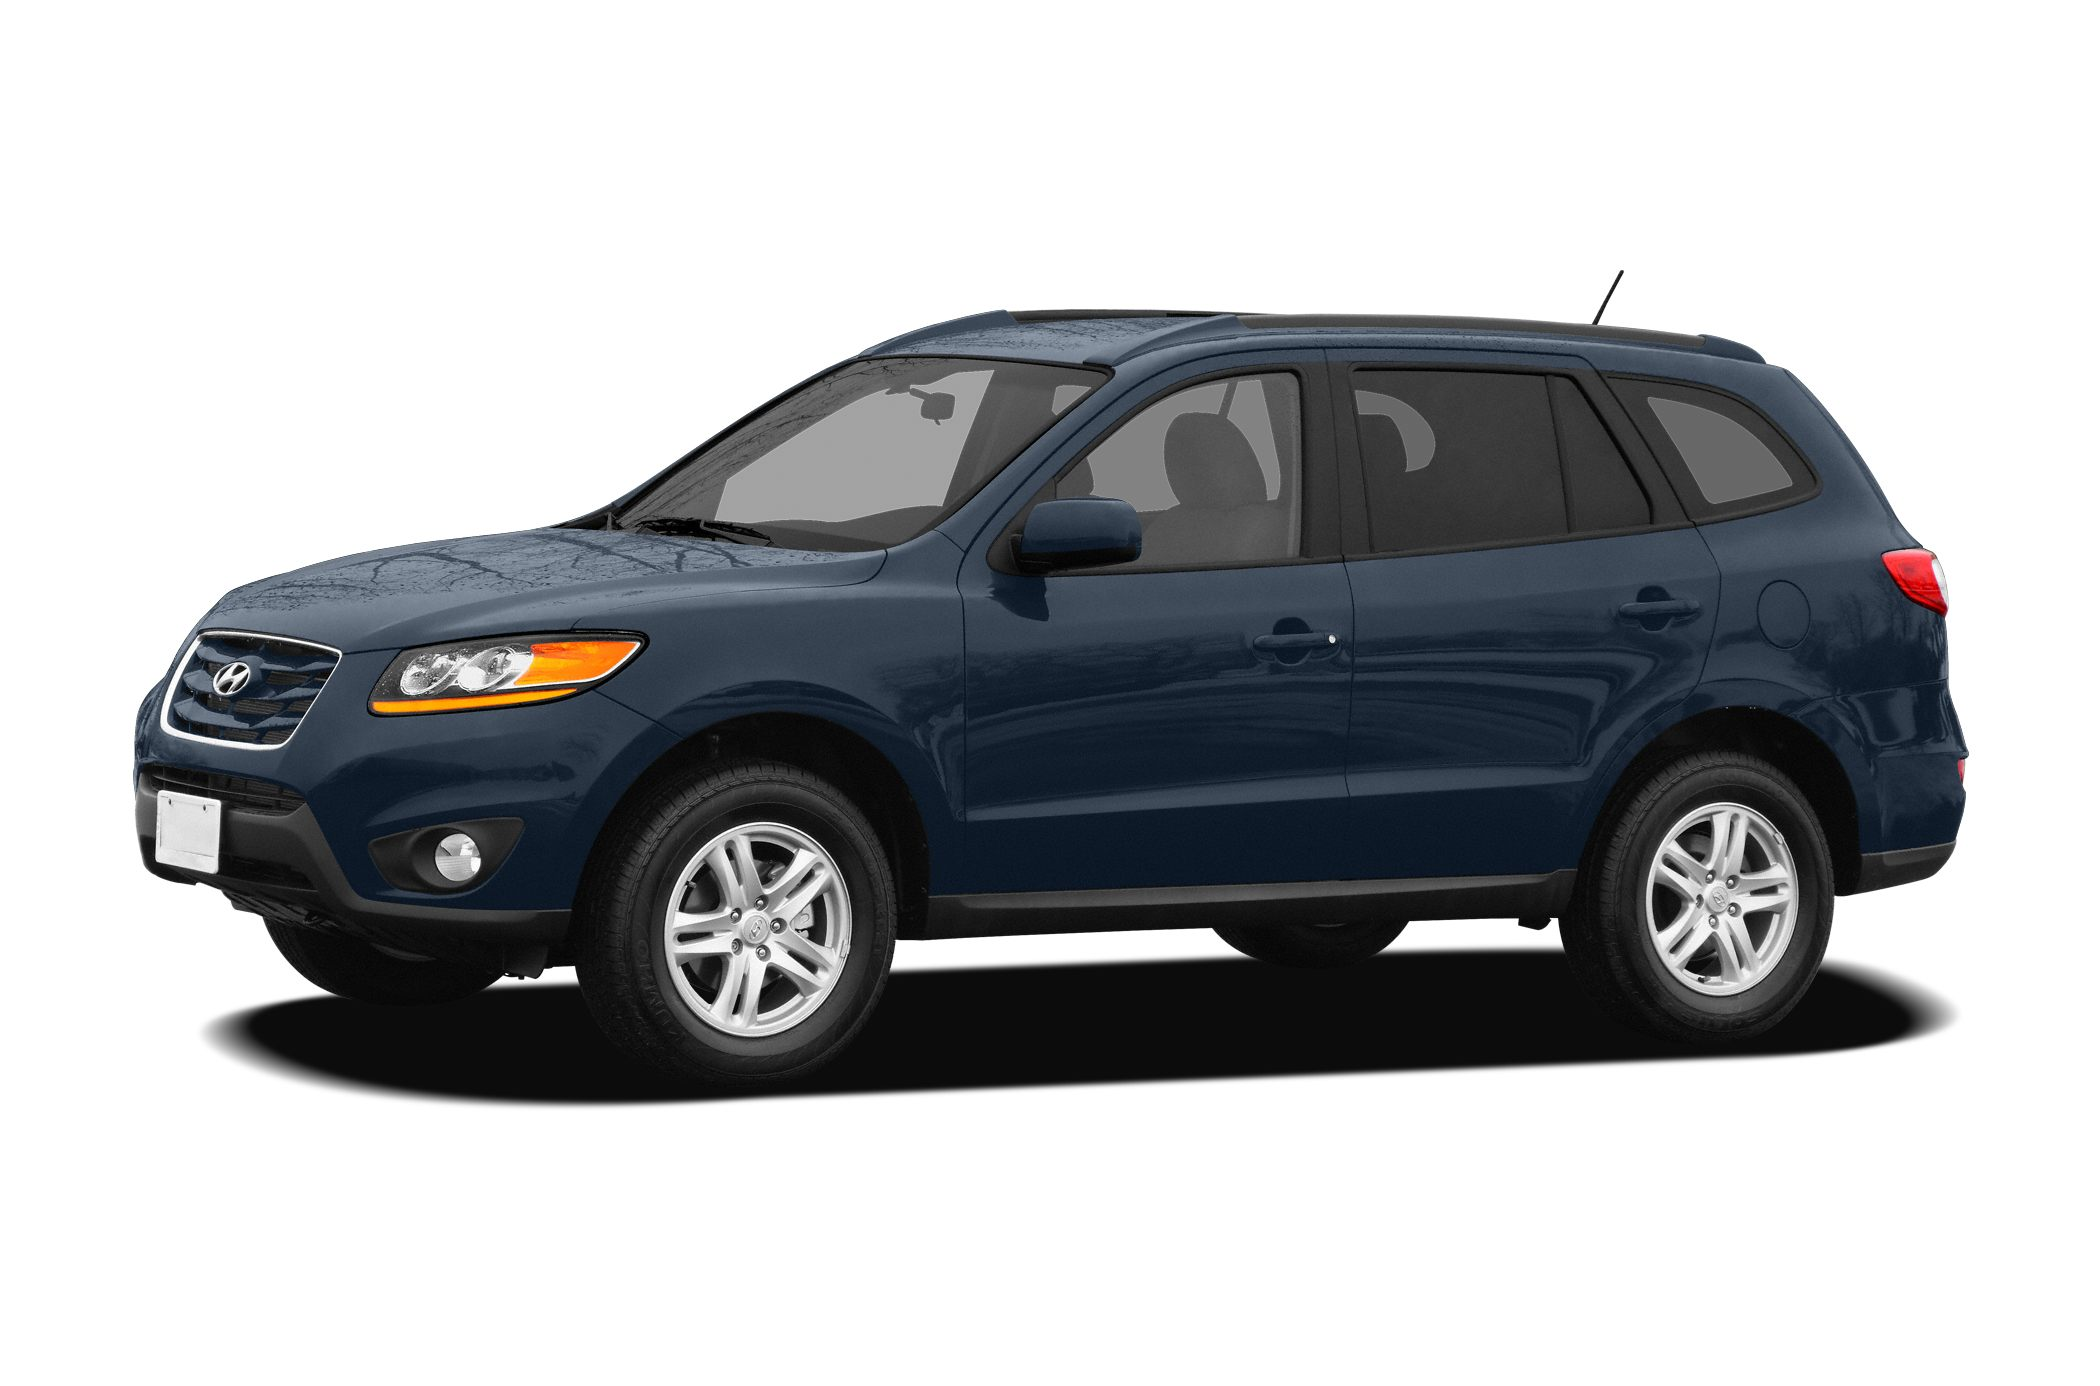 2011 Hyundai Santa Fe Limited SUV for sale in Dubuque for $20,385 with 42,461 miles